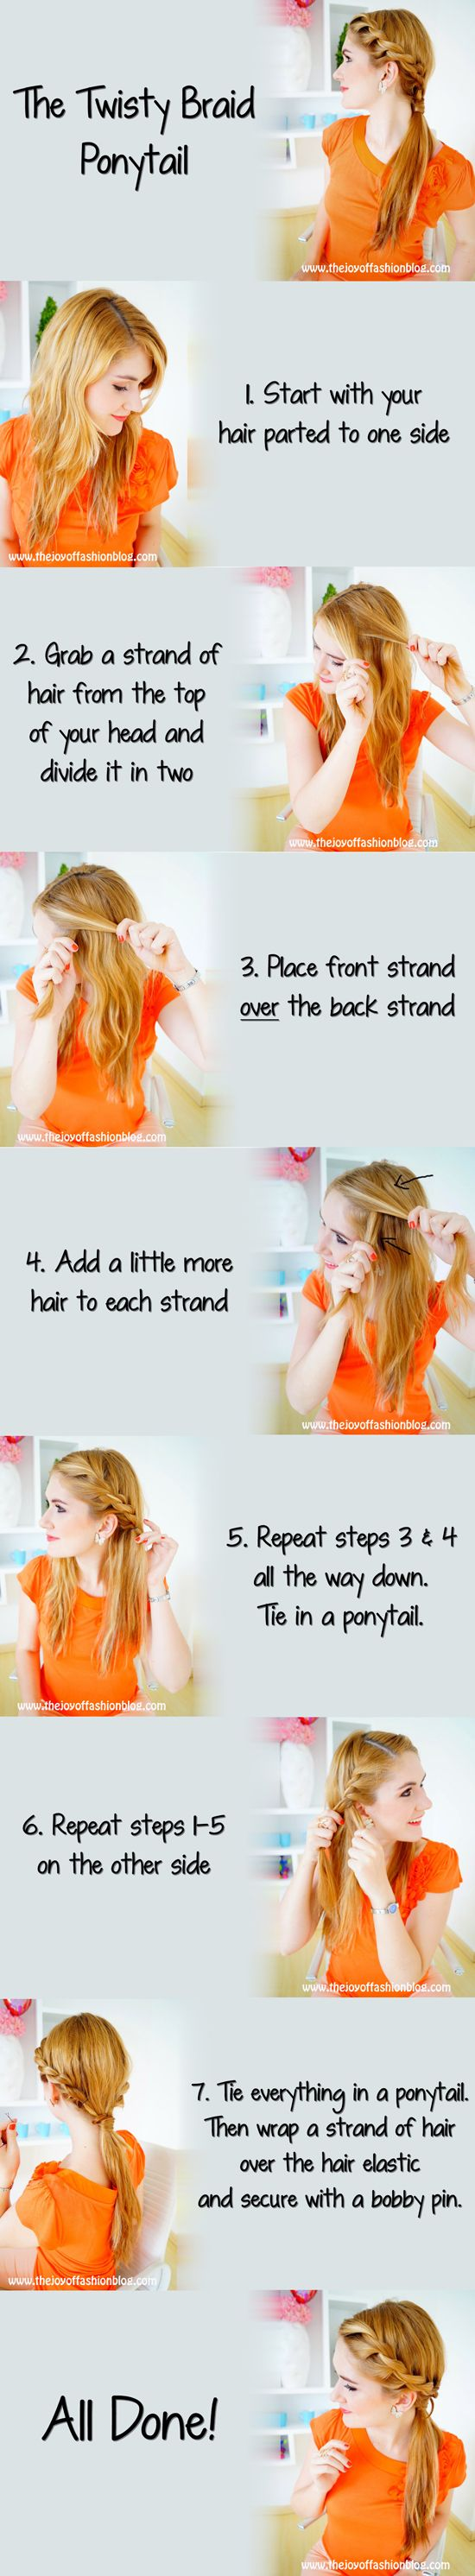 DIY Twisty Braid Hair Tutorial